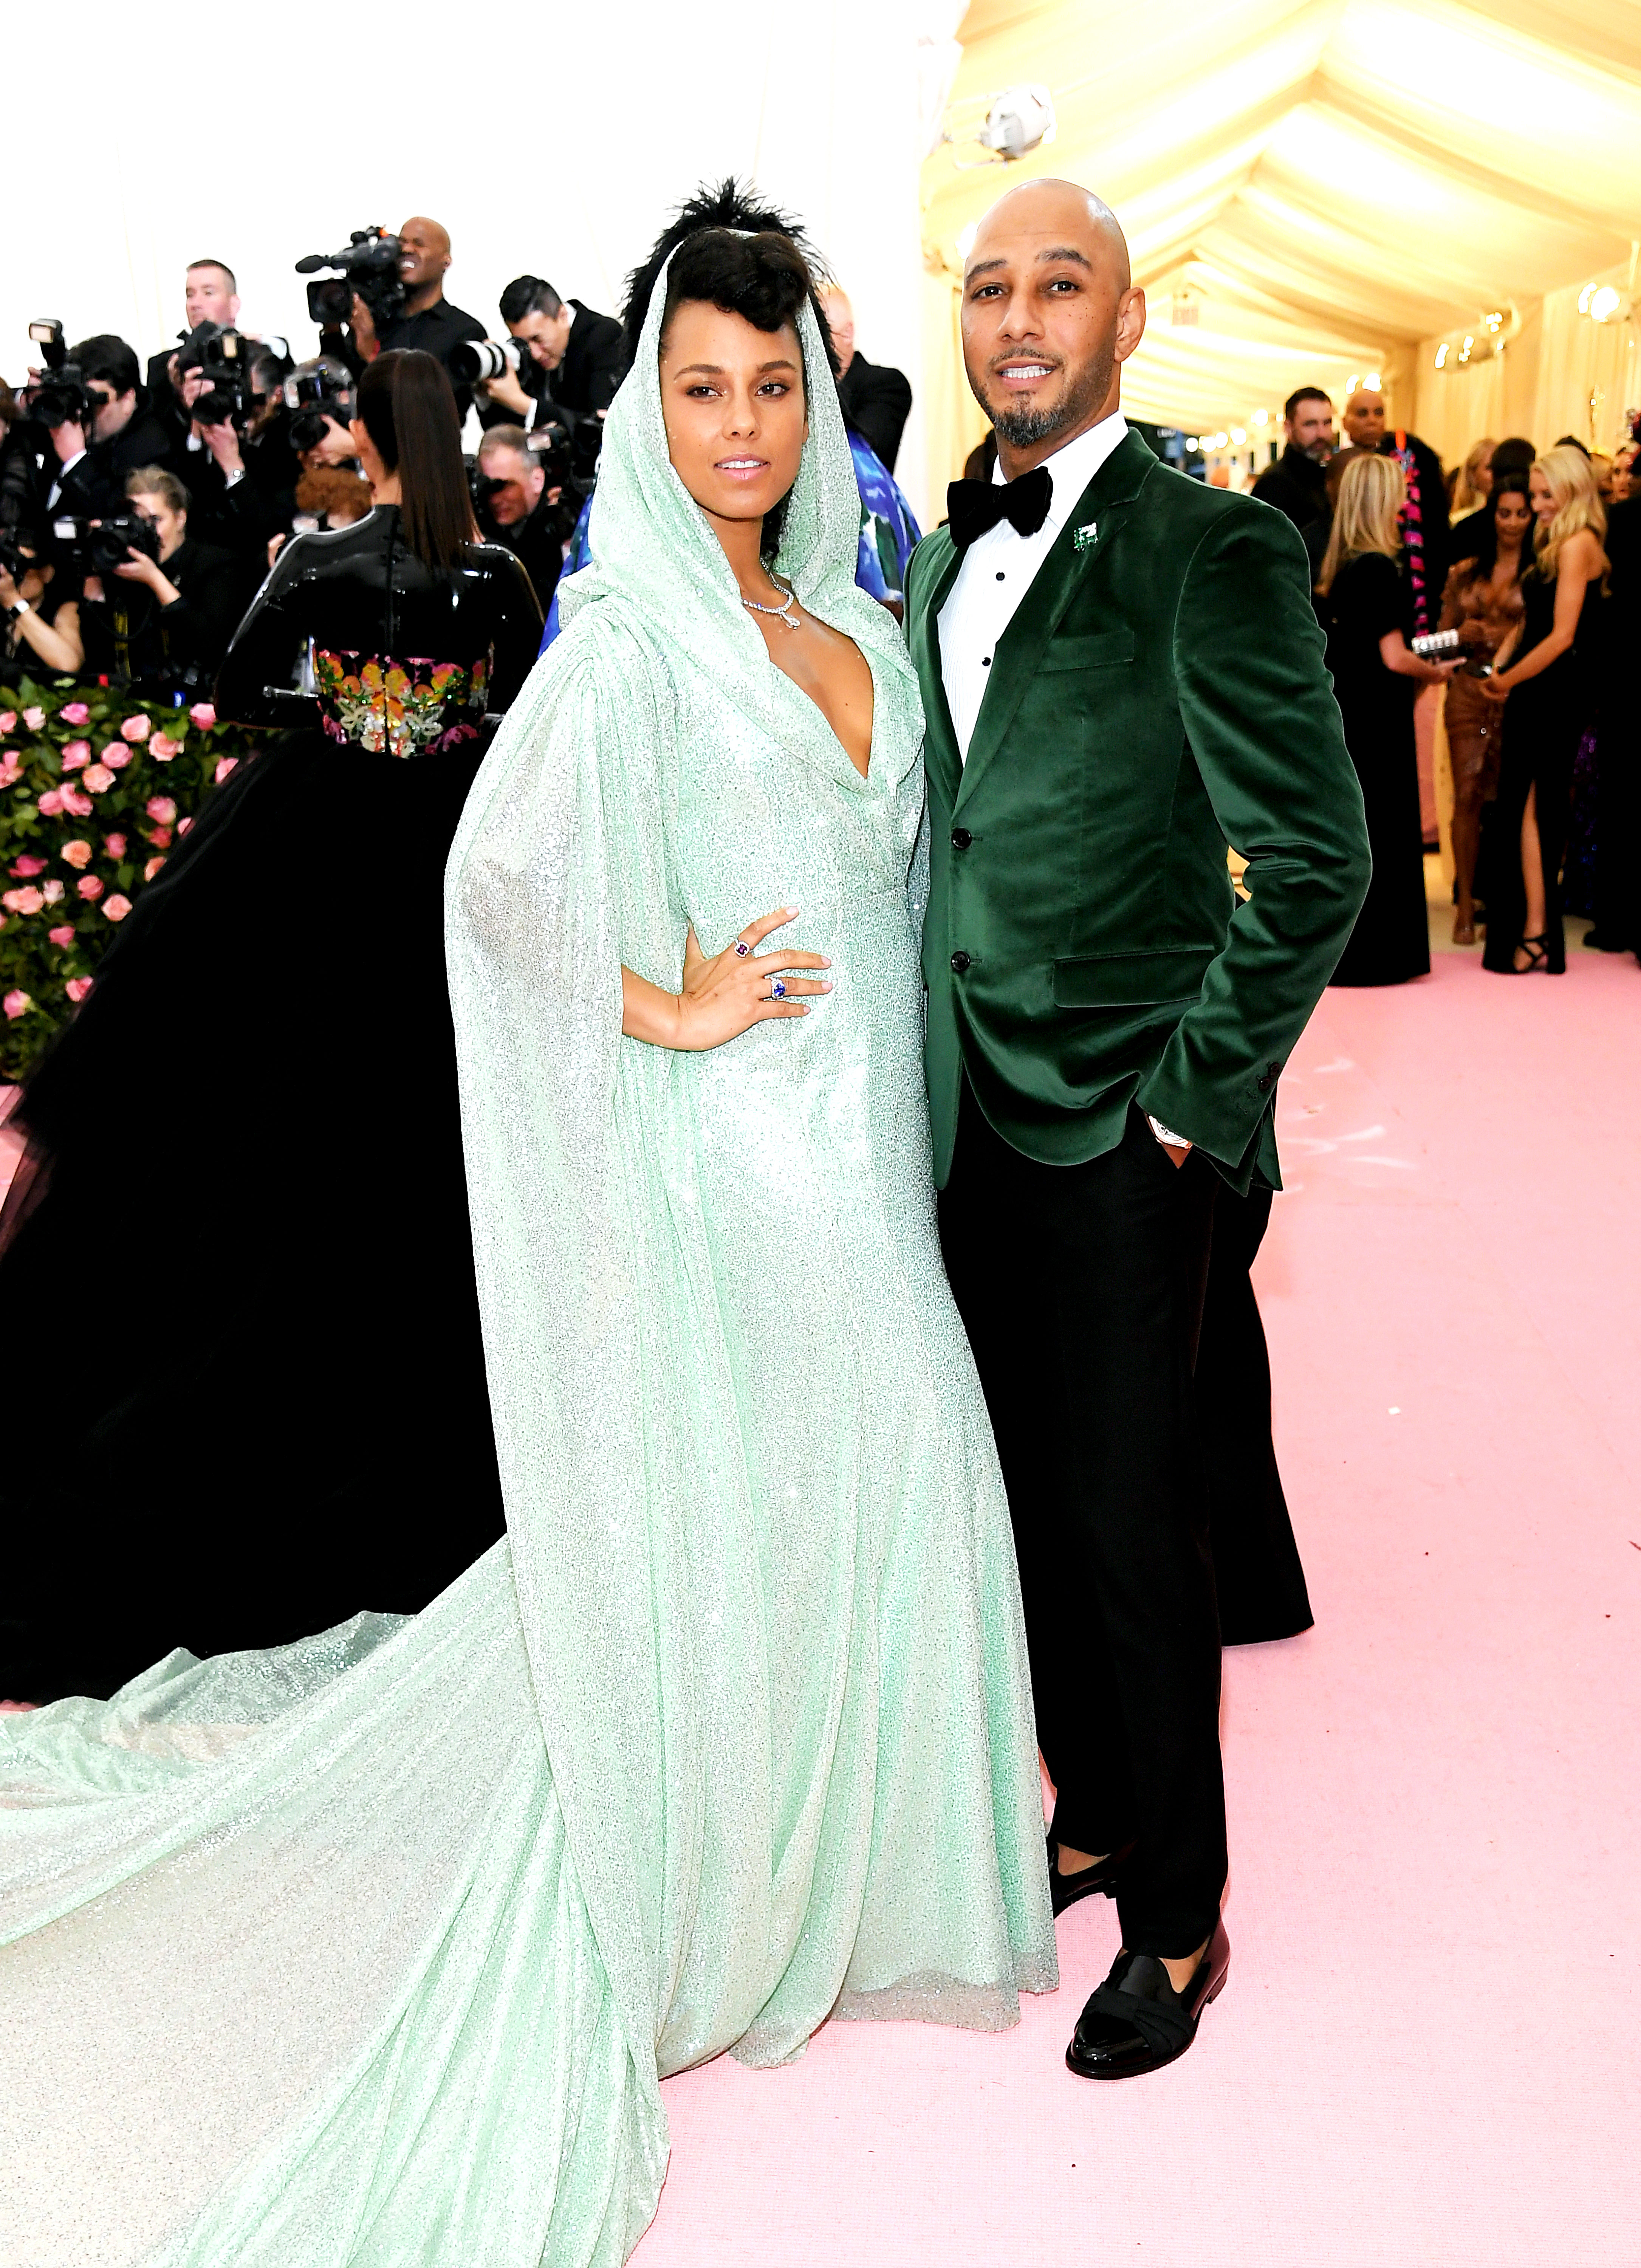 Alicia Keys and Swizz Beatz met gala 2019 couples - The ever-cool couple was the perfect pair in green Carolina Herrera designs.